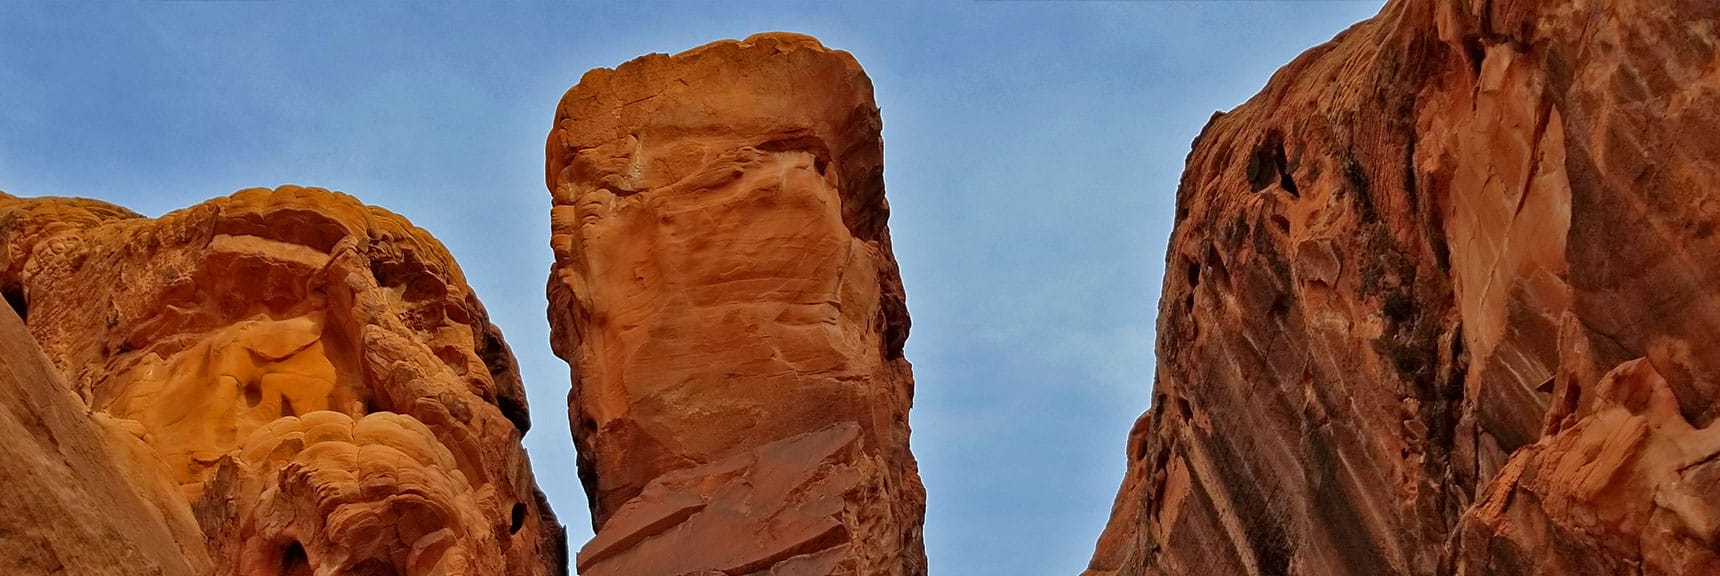 This Huge Pinnacle Was Balanced Impossibly in Fire Canyon in Valley of Fire State Park, Nevada